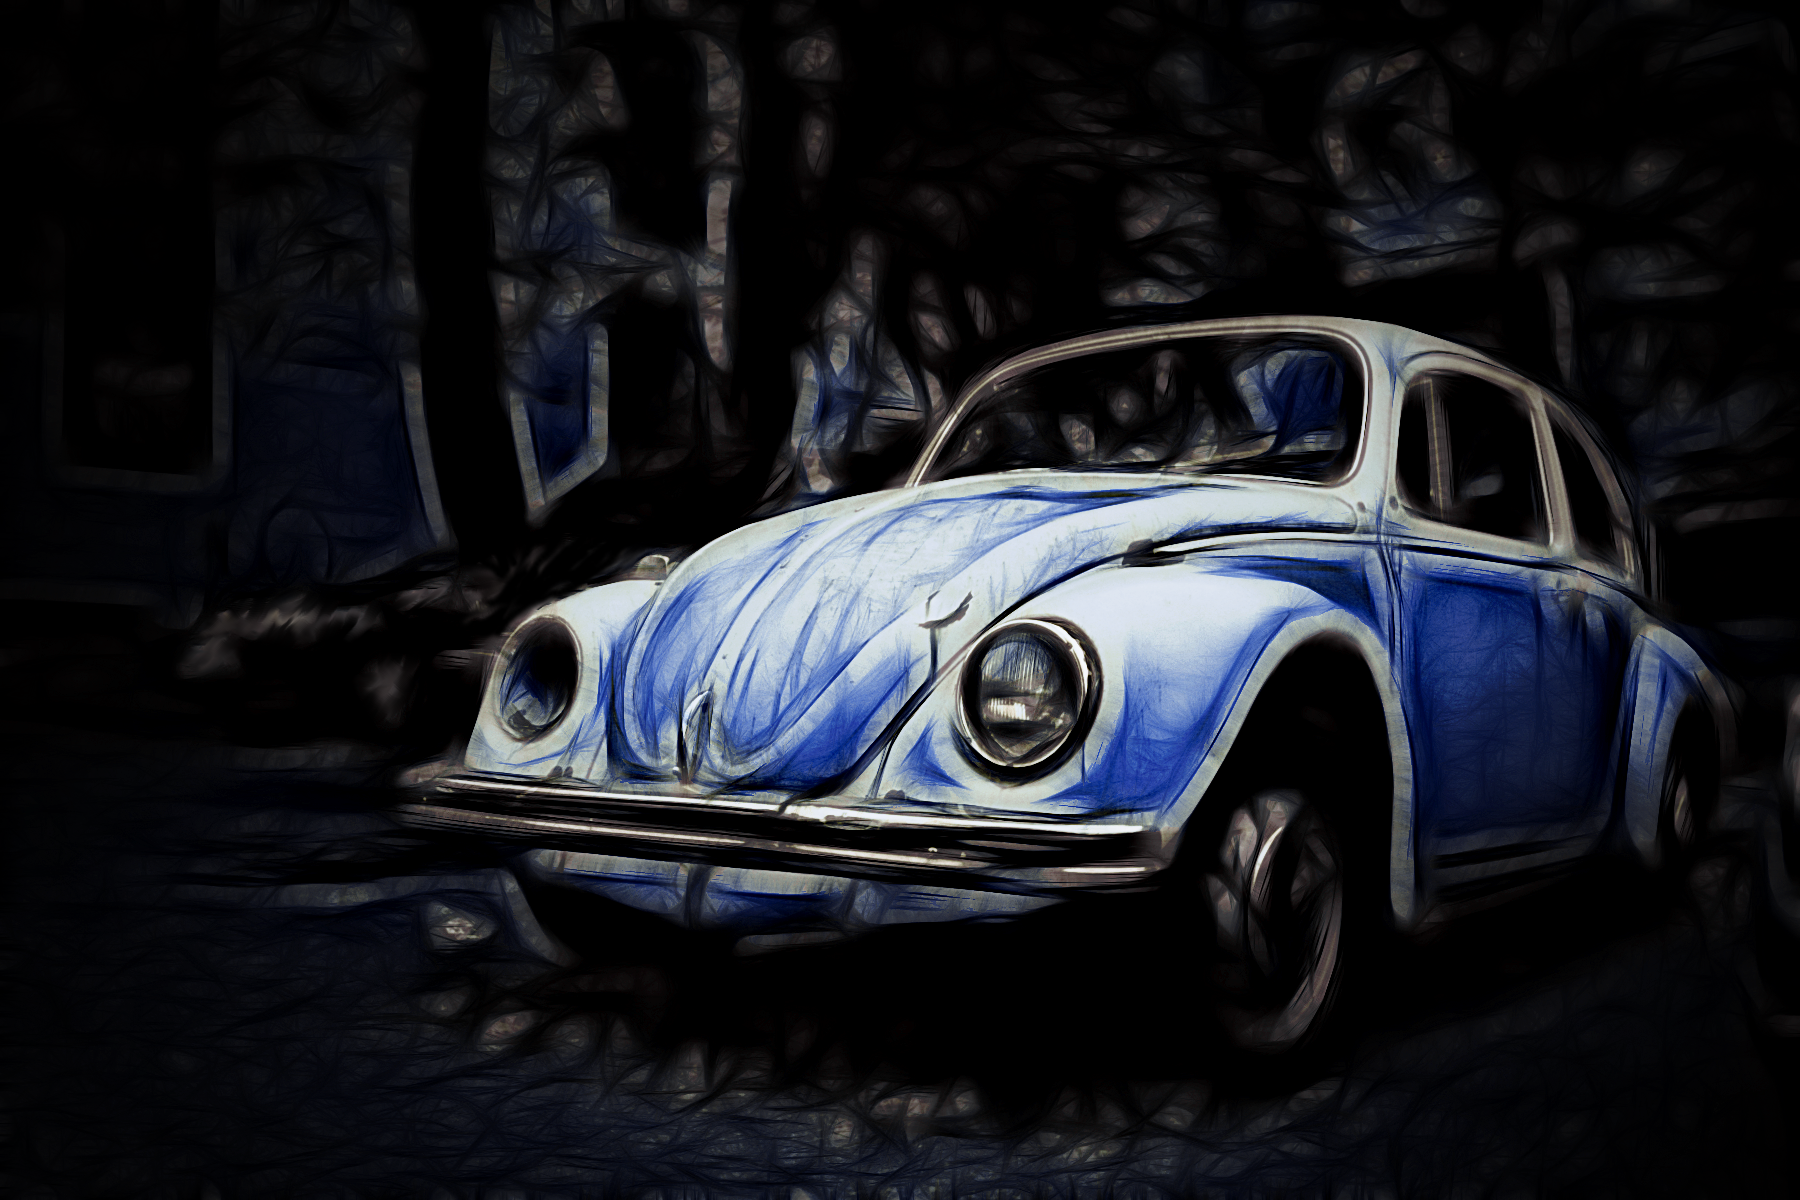 Volkswagen Wallpaper and Background Image | 1800x1200 | ID:214544 - Wallpaper Abyss